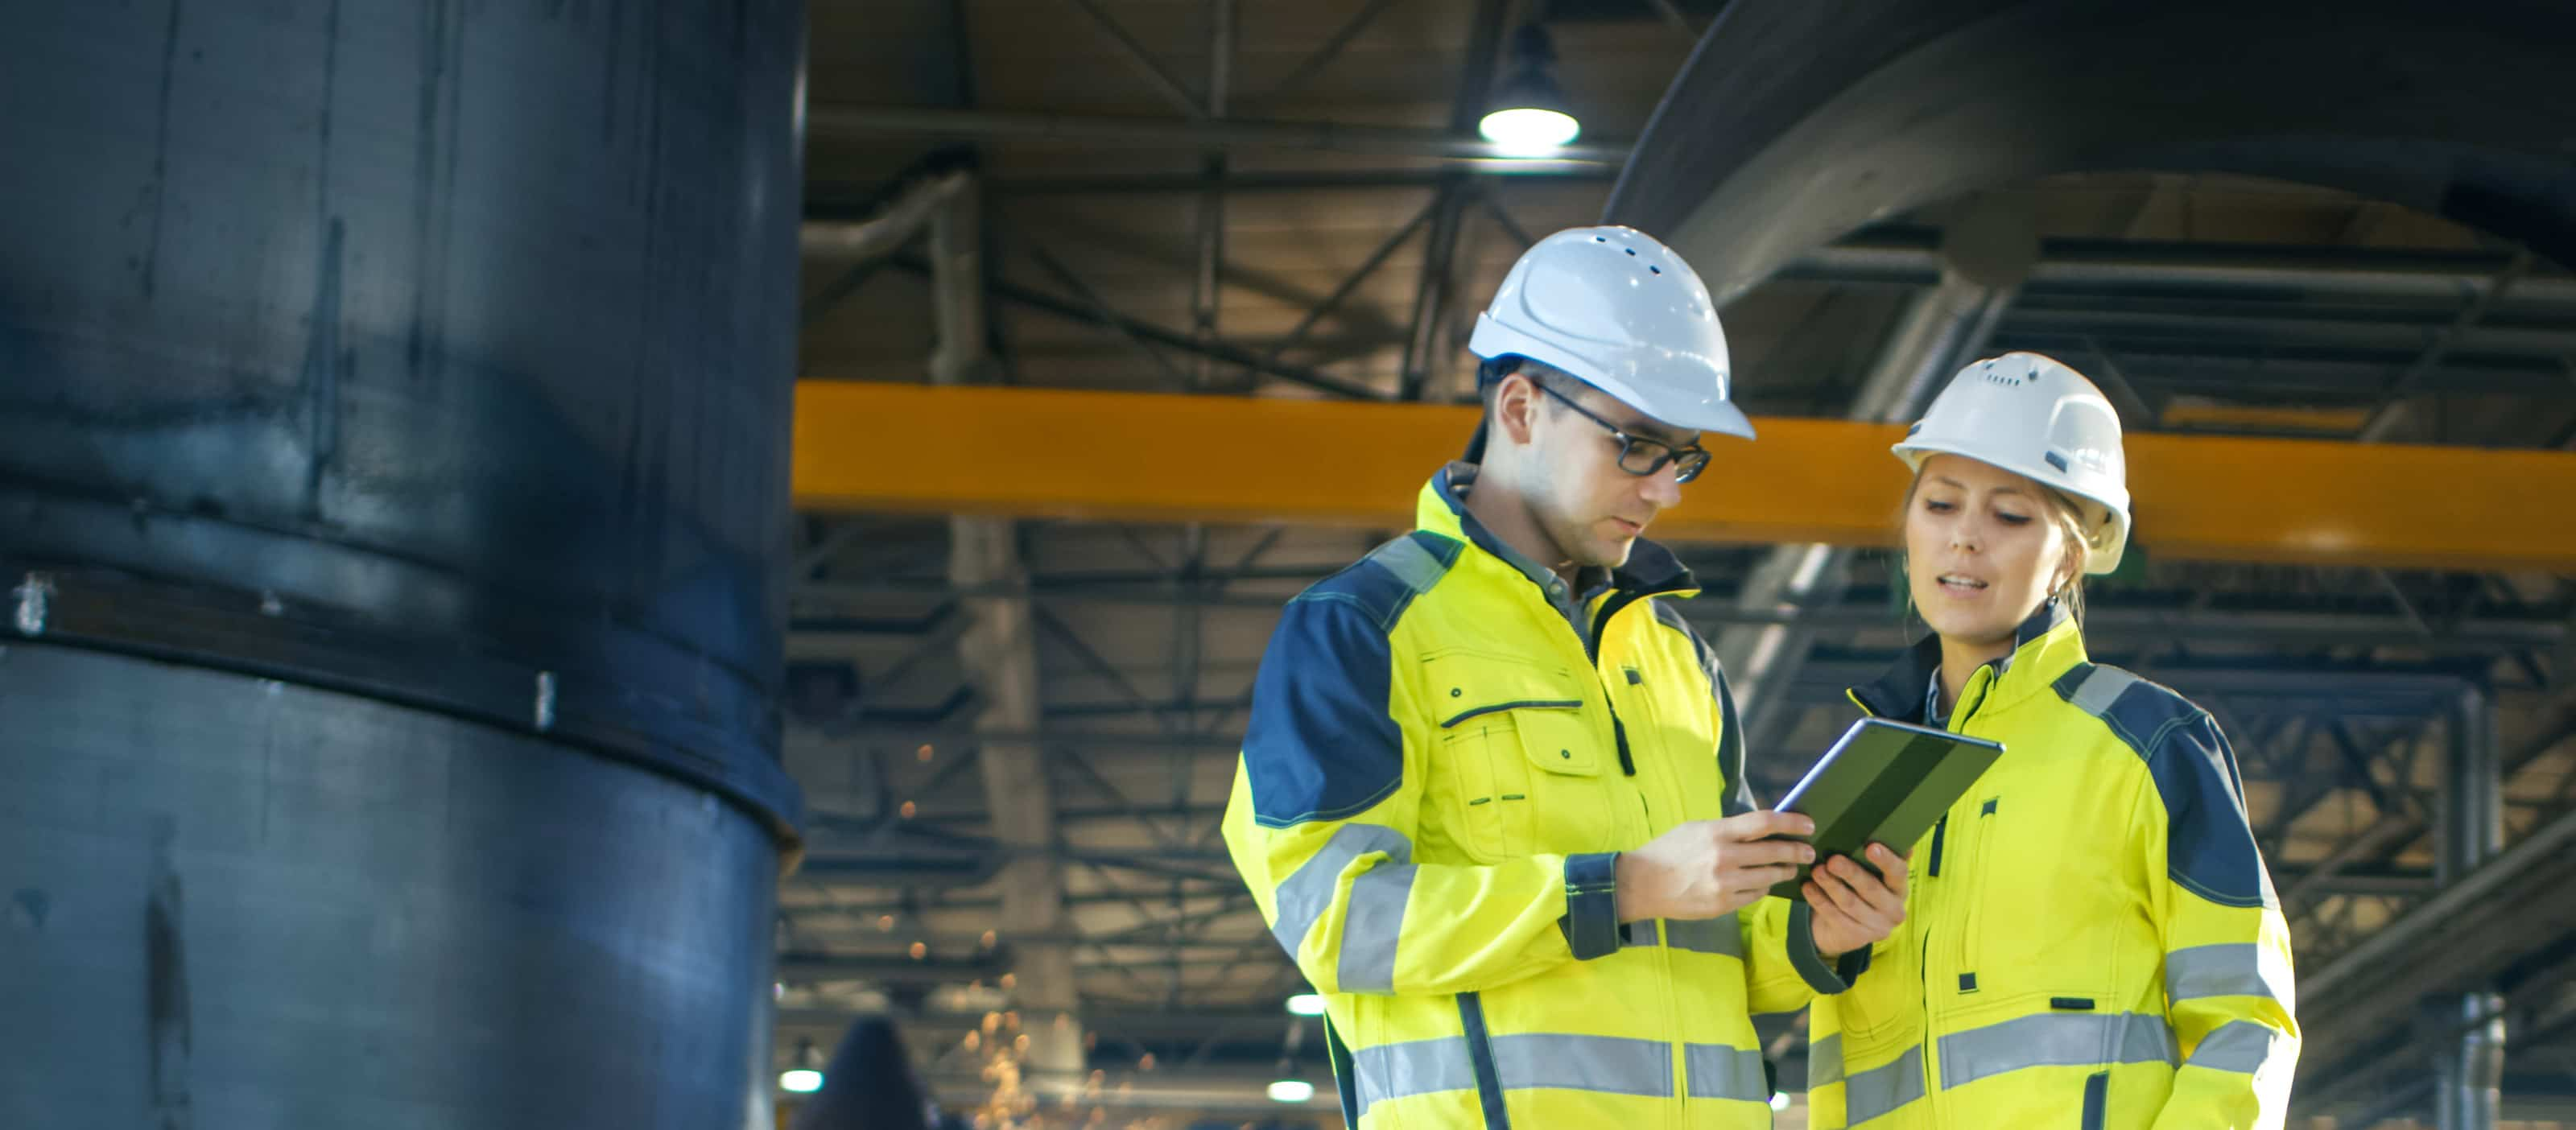 HMI/SCADA software in use in industrial operations | GE Digital